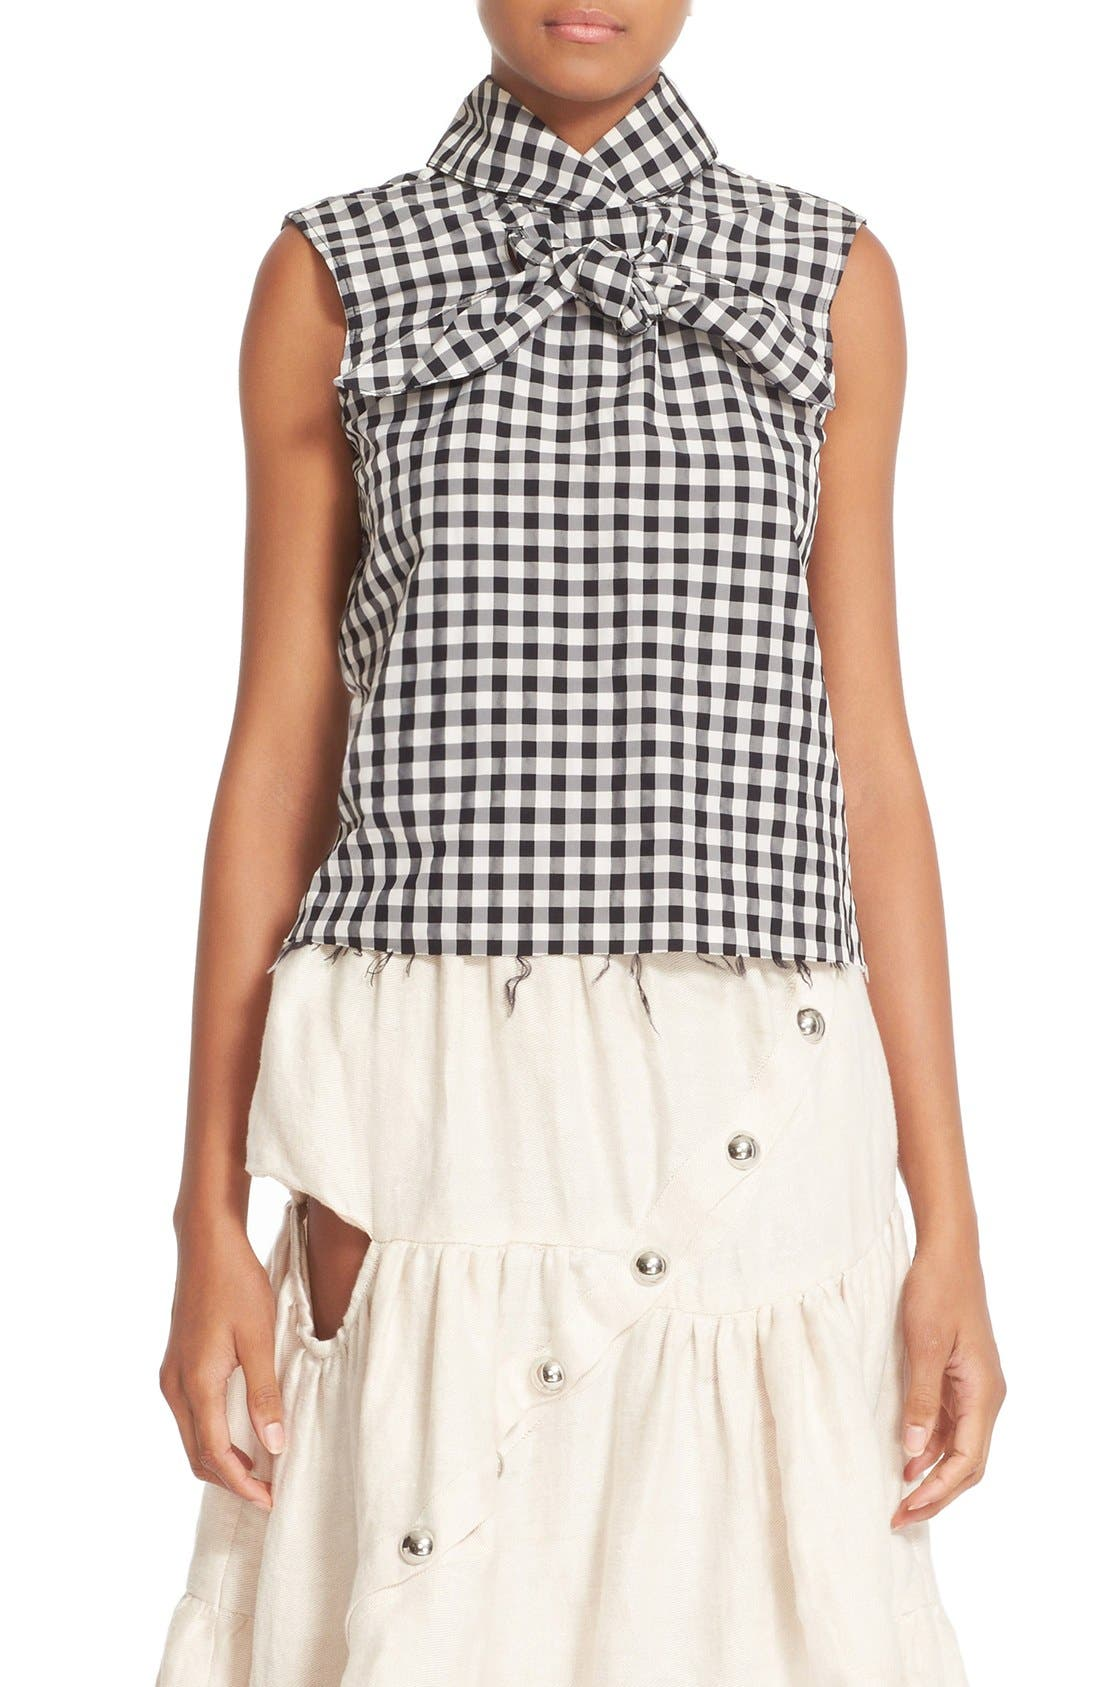 MARQUES'ALMEIDA Marques'Almeida High Neck Knotted Gingham Top